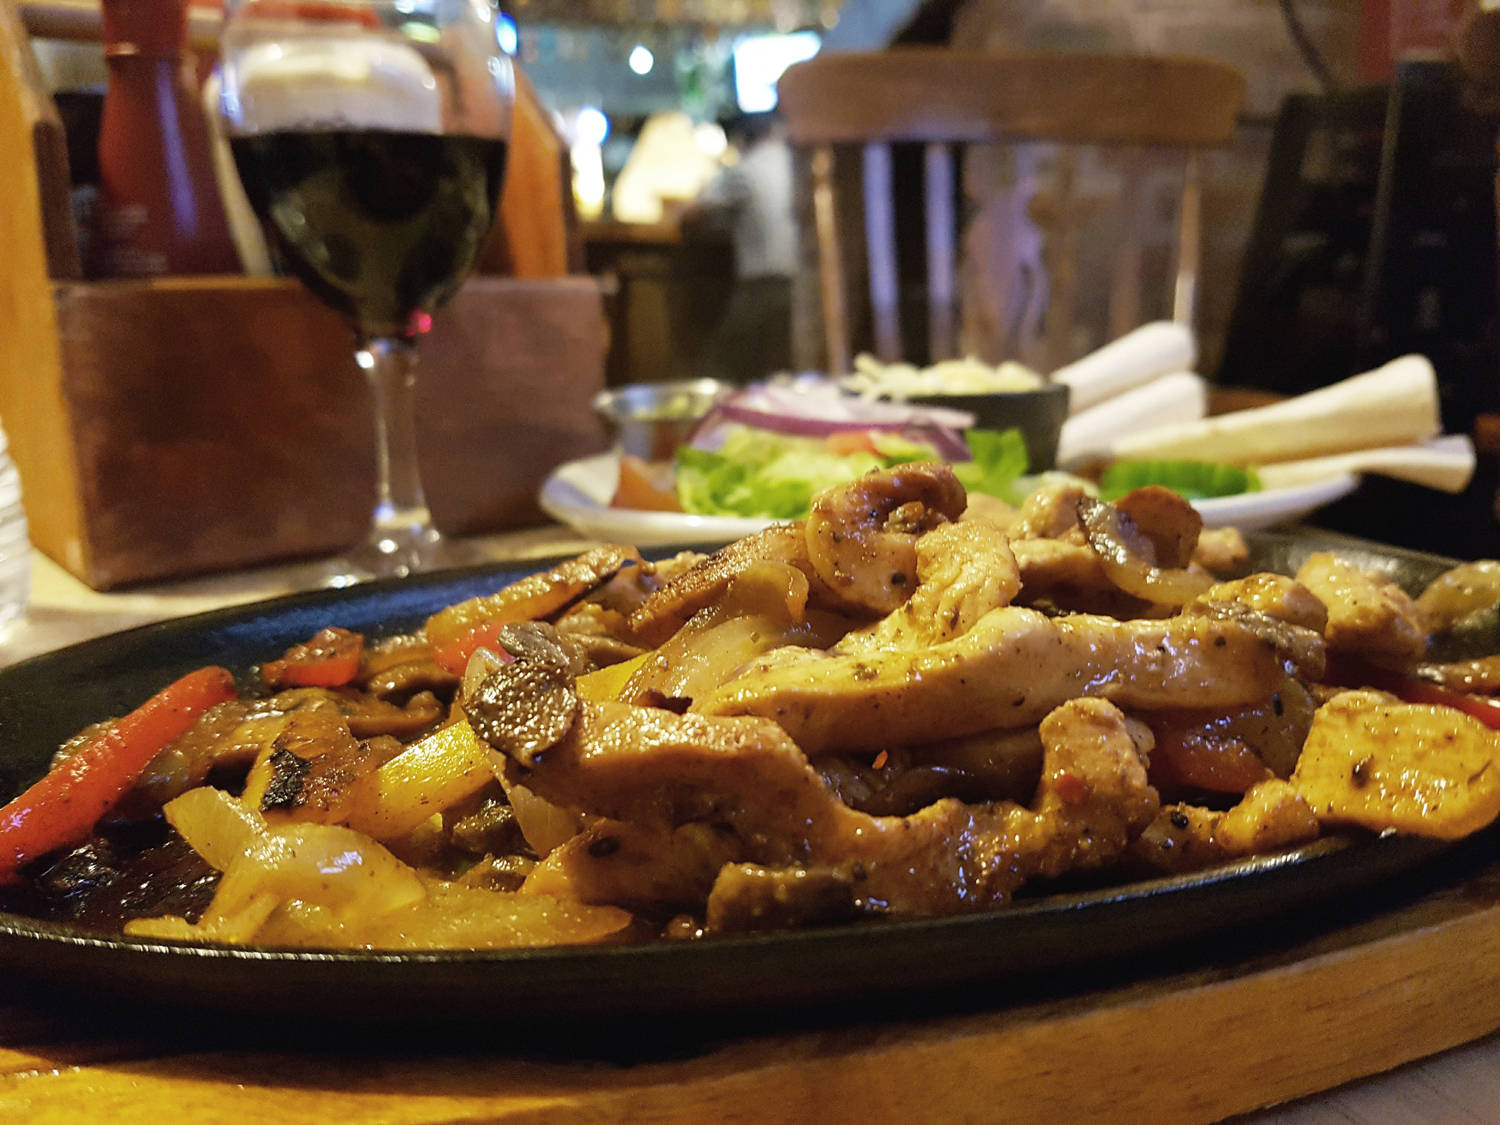 Chicken fajitas at the travellers rest in Consett